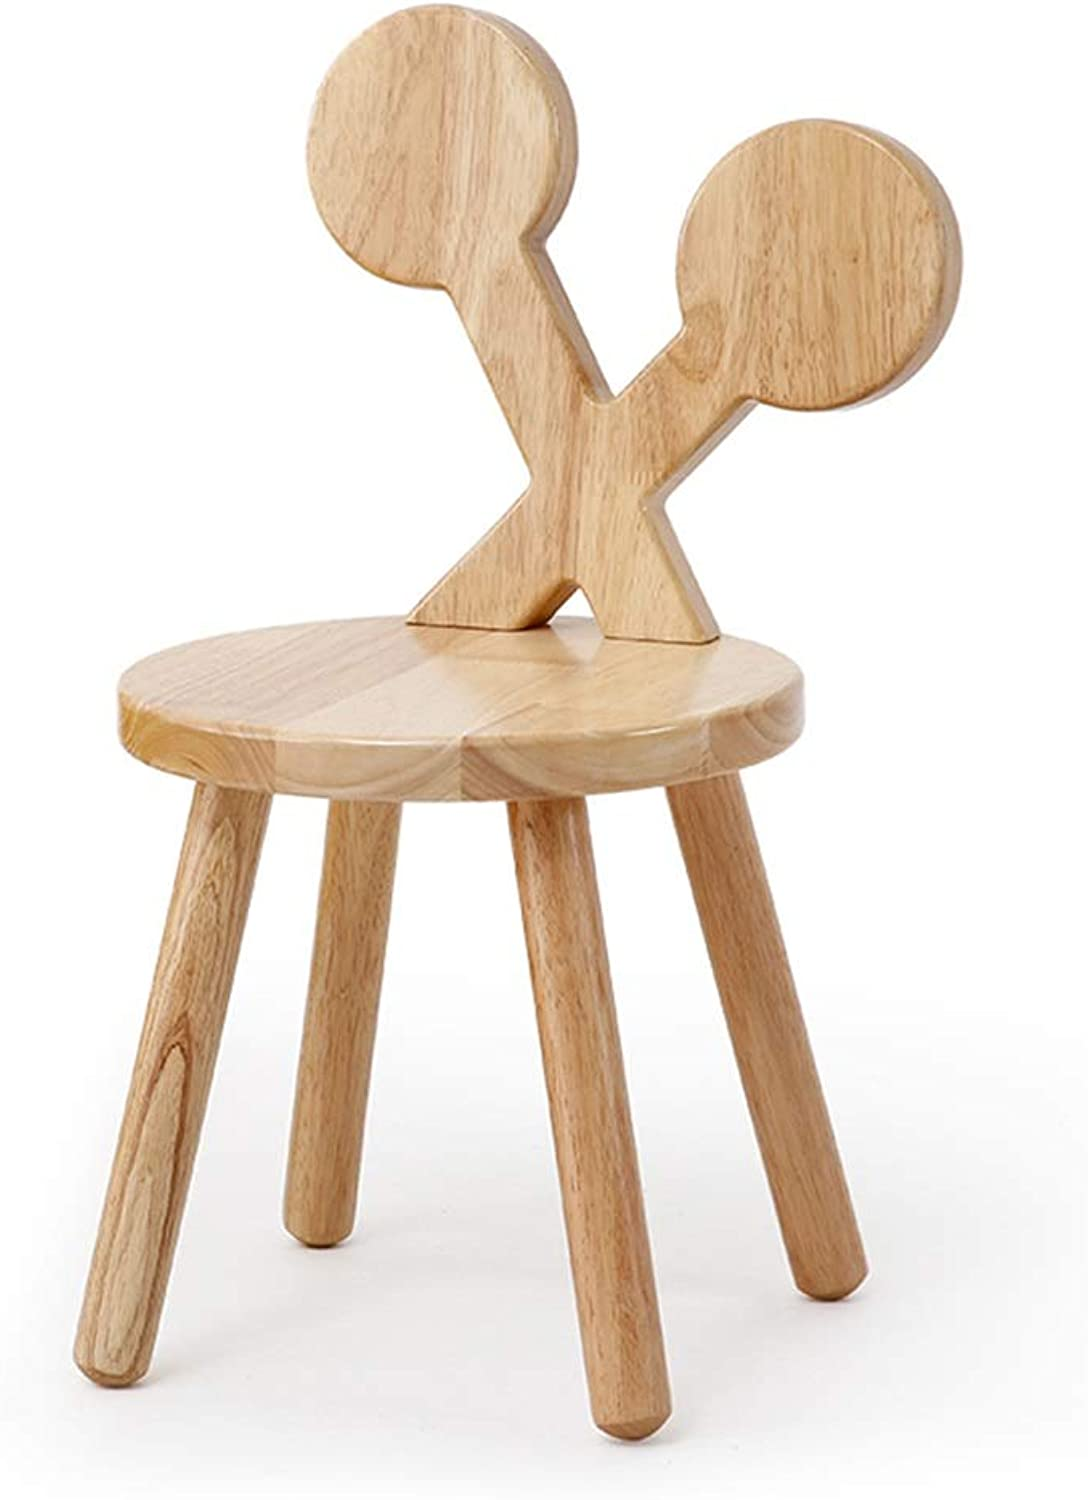 Small Stool Solid Wood Back Chair Solid Wood Home Cartoon shoes Bench Baby Chair Stool (color   Lollipop)